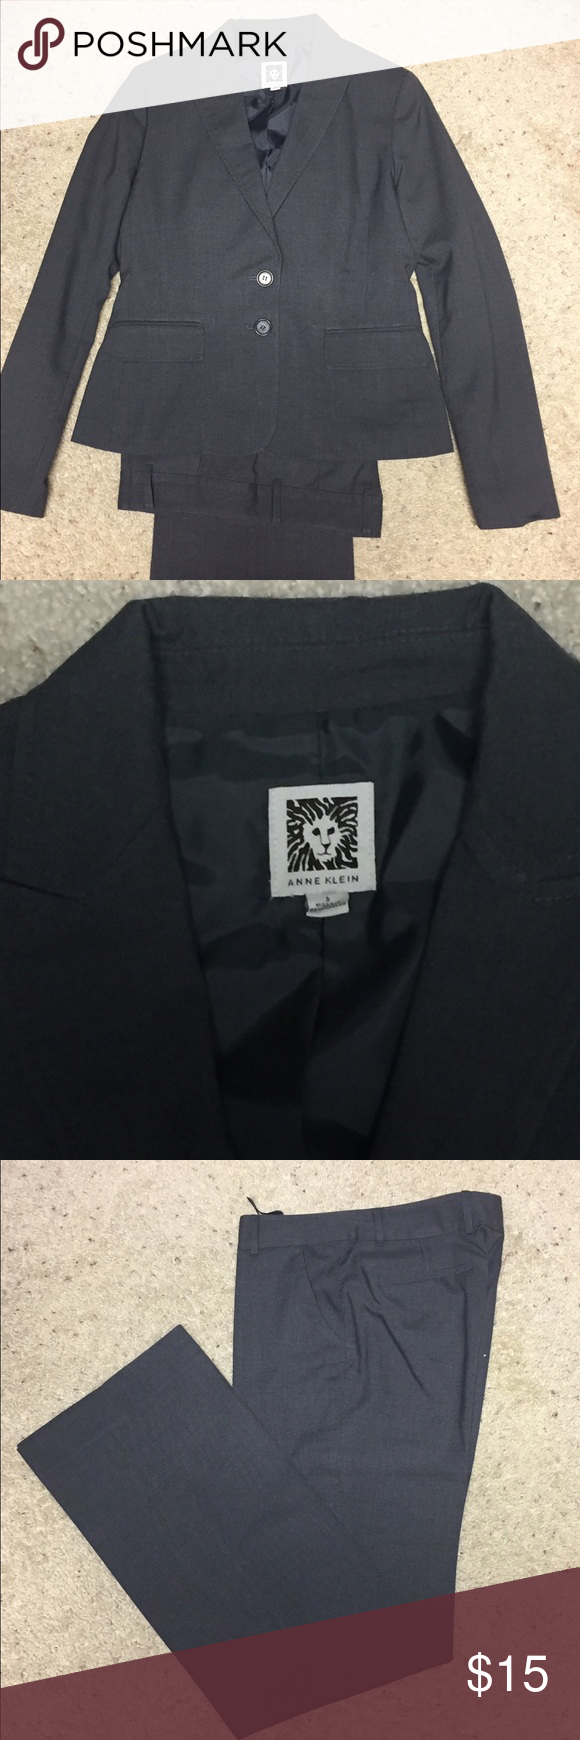 Charcoal grey suit -- jacket and pants Anne Klein charcoal grey suit. Gently worn. Professional. Dry clean only. Tag size 2. No alterations. Anne Klein Other